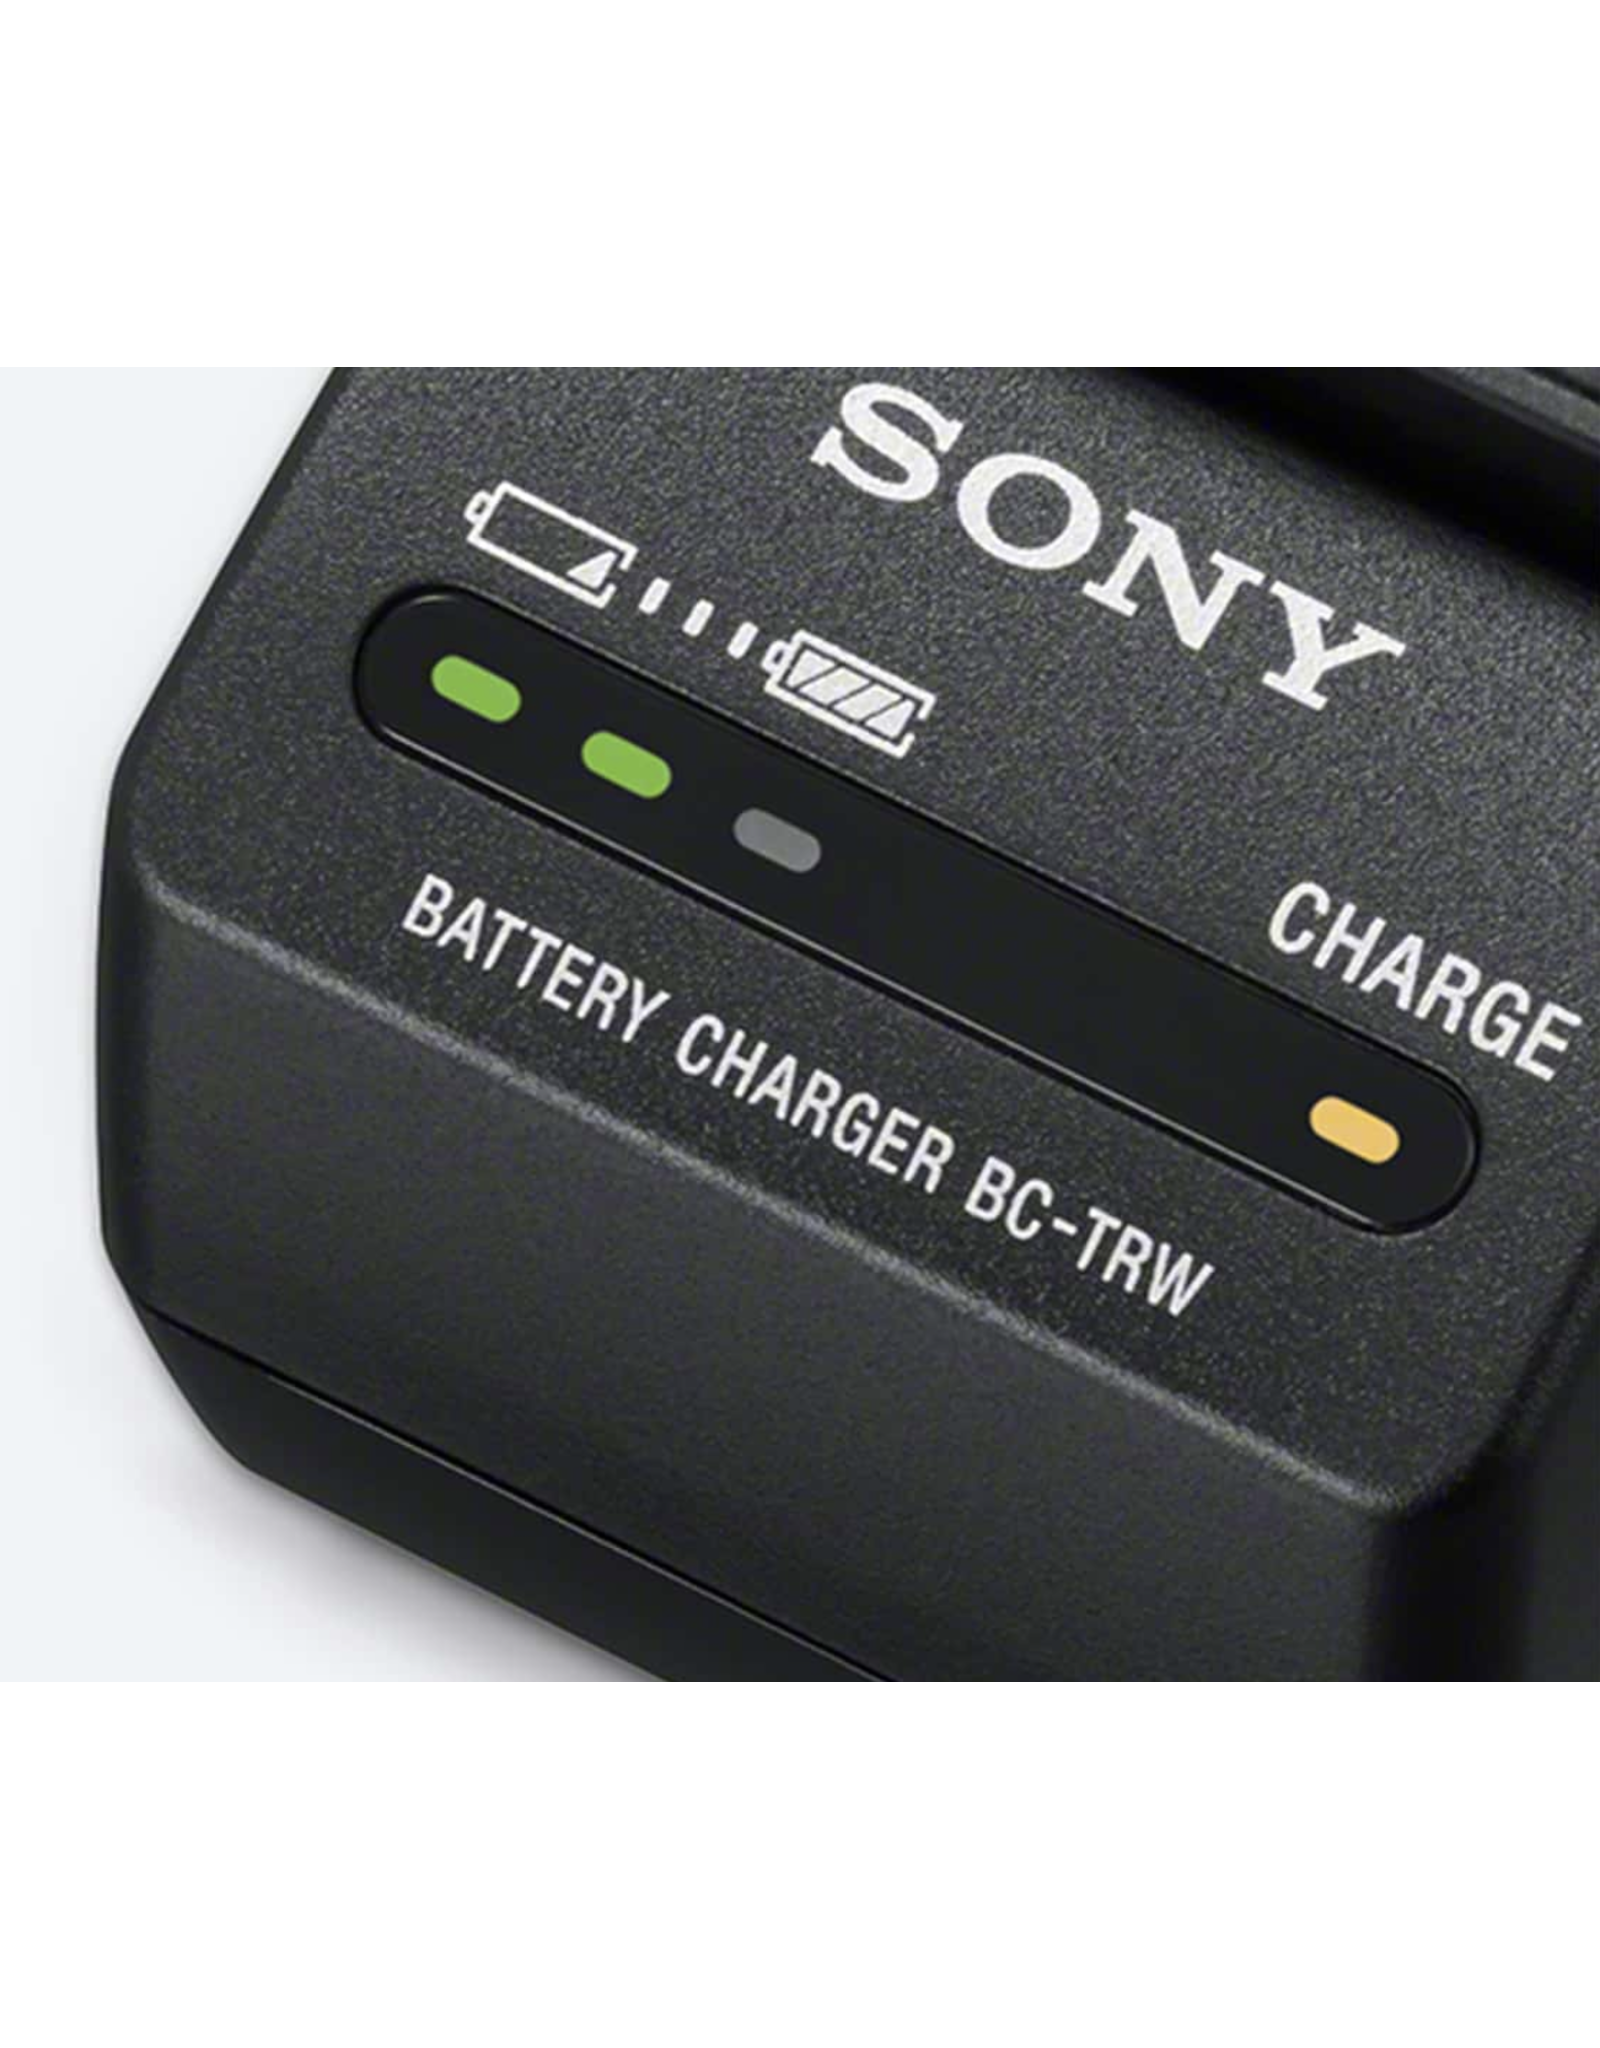 Sony Sony BC-TRW Battery Charger for NP-FW50